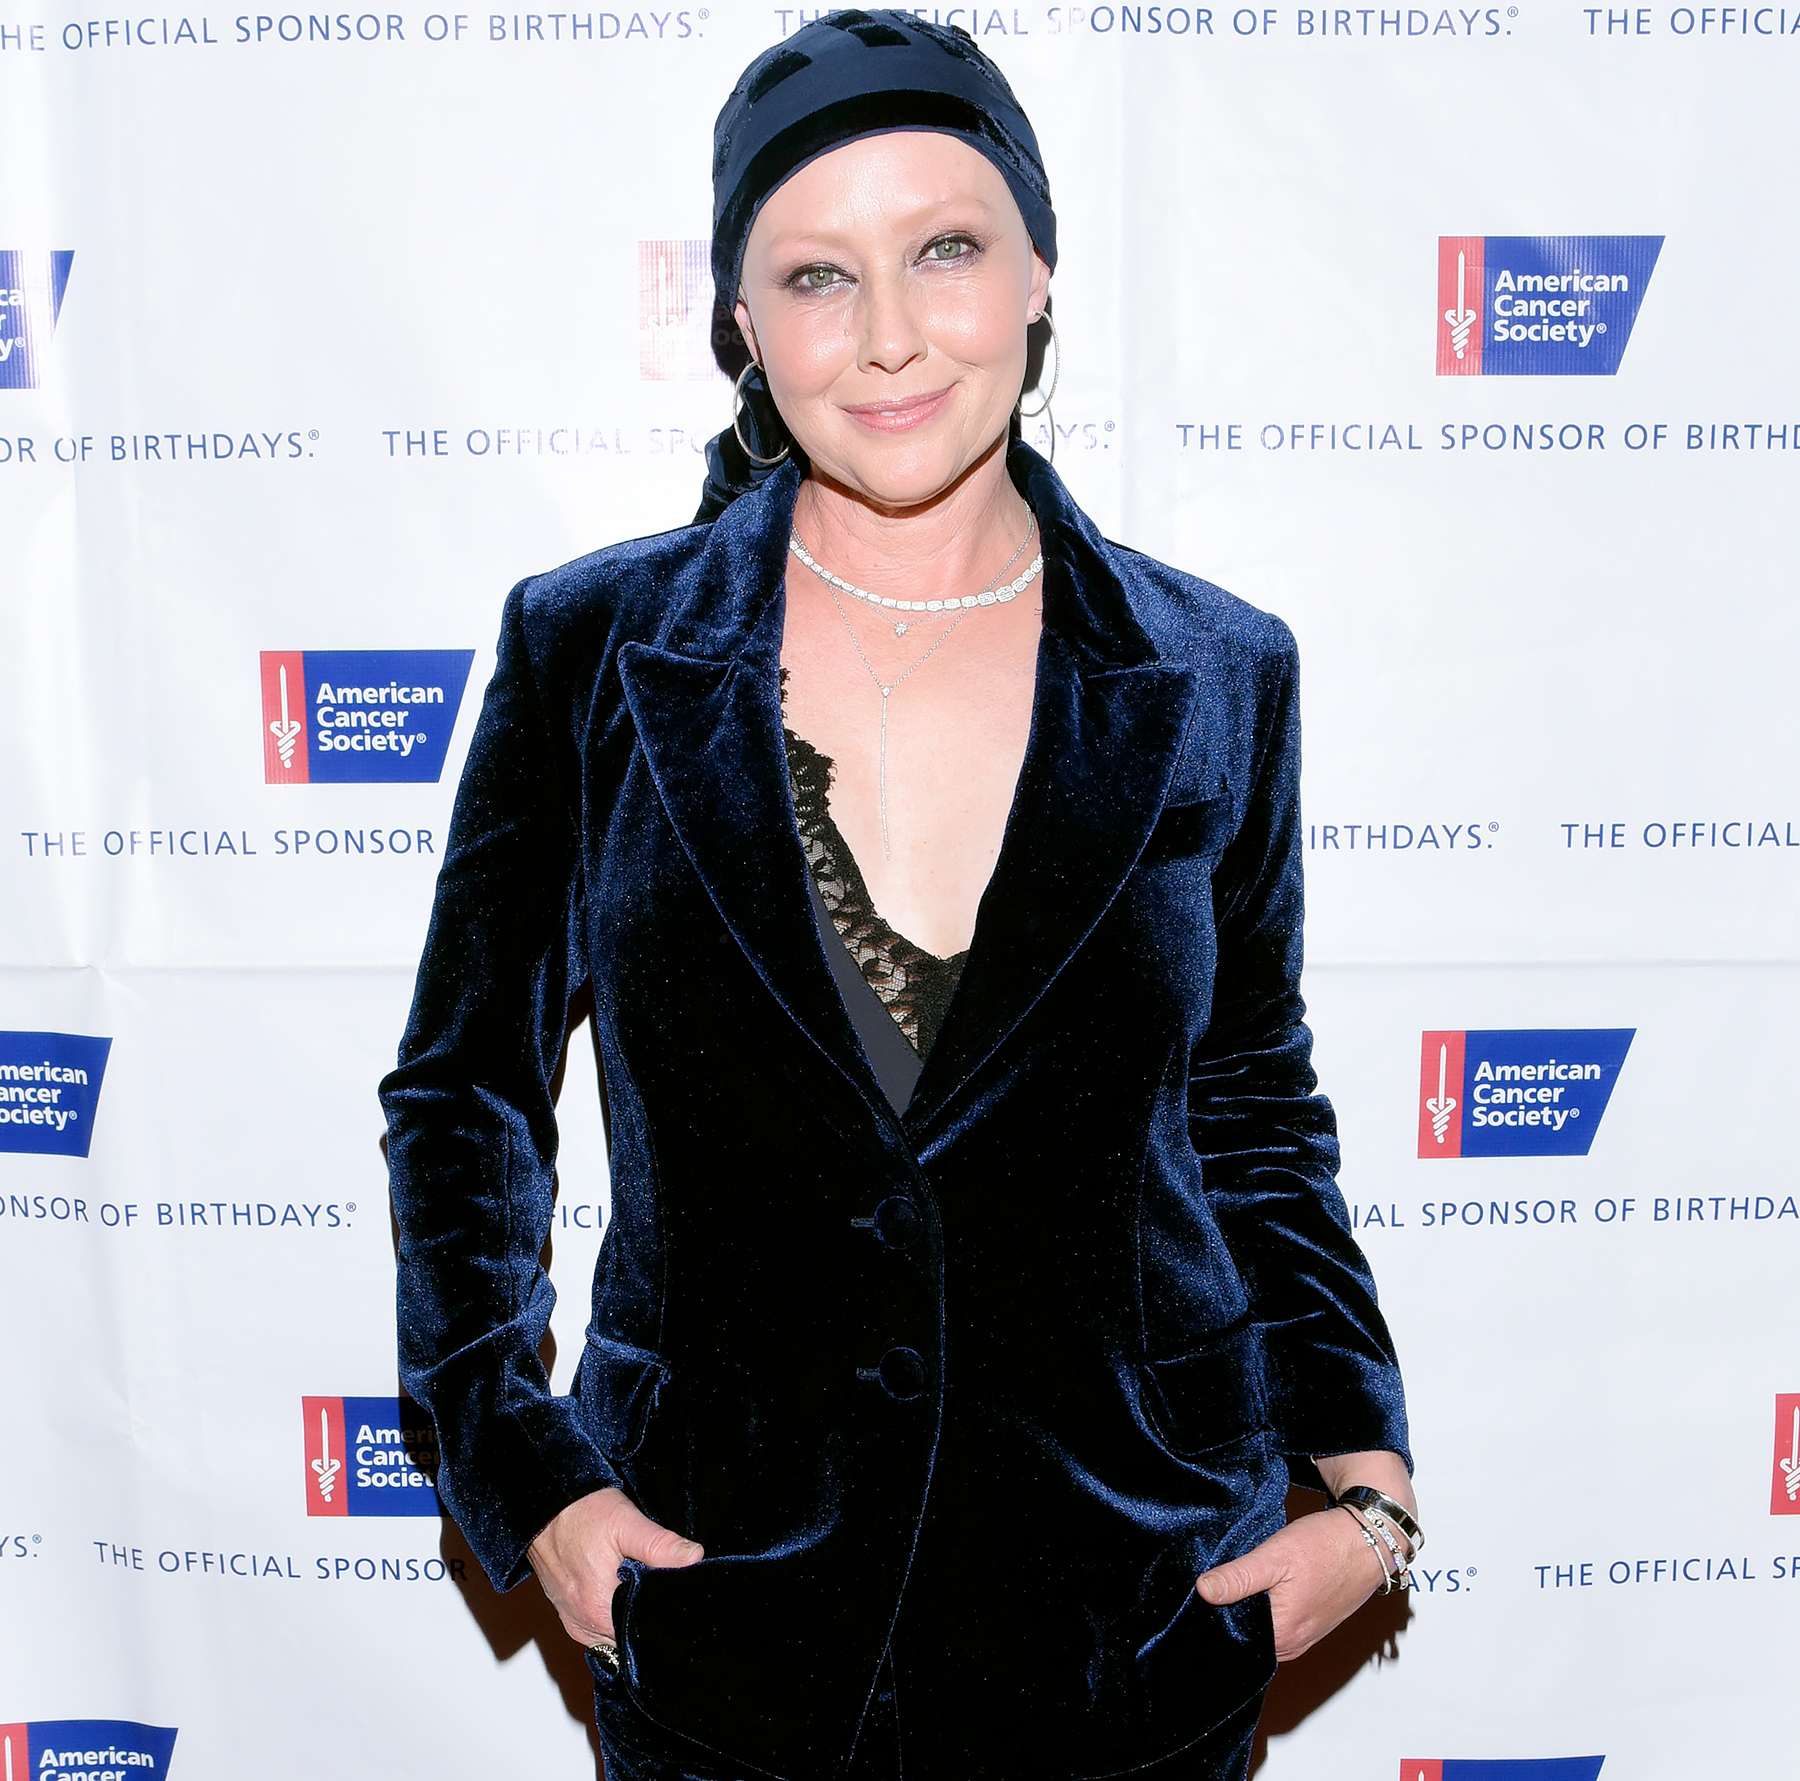 Shannen Doherty arrives at American Cancer Society's Giants of Science Los Angeles Gala on November 5, 2016 in Los Angeles, California.